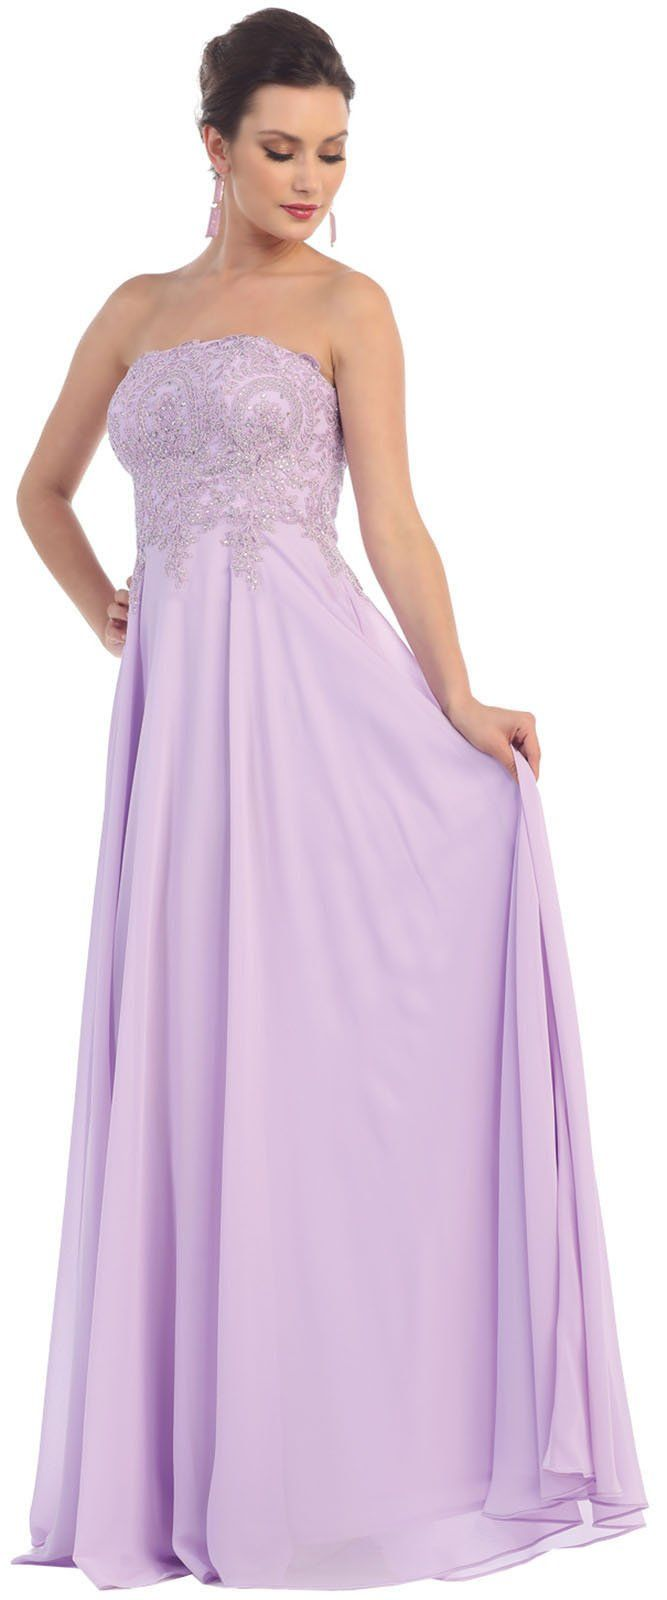 May queen mq strapless bridesmaids long gown blush click